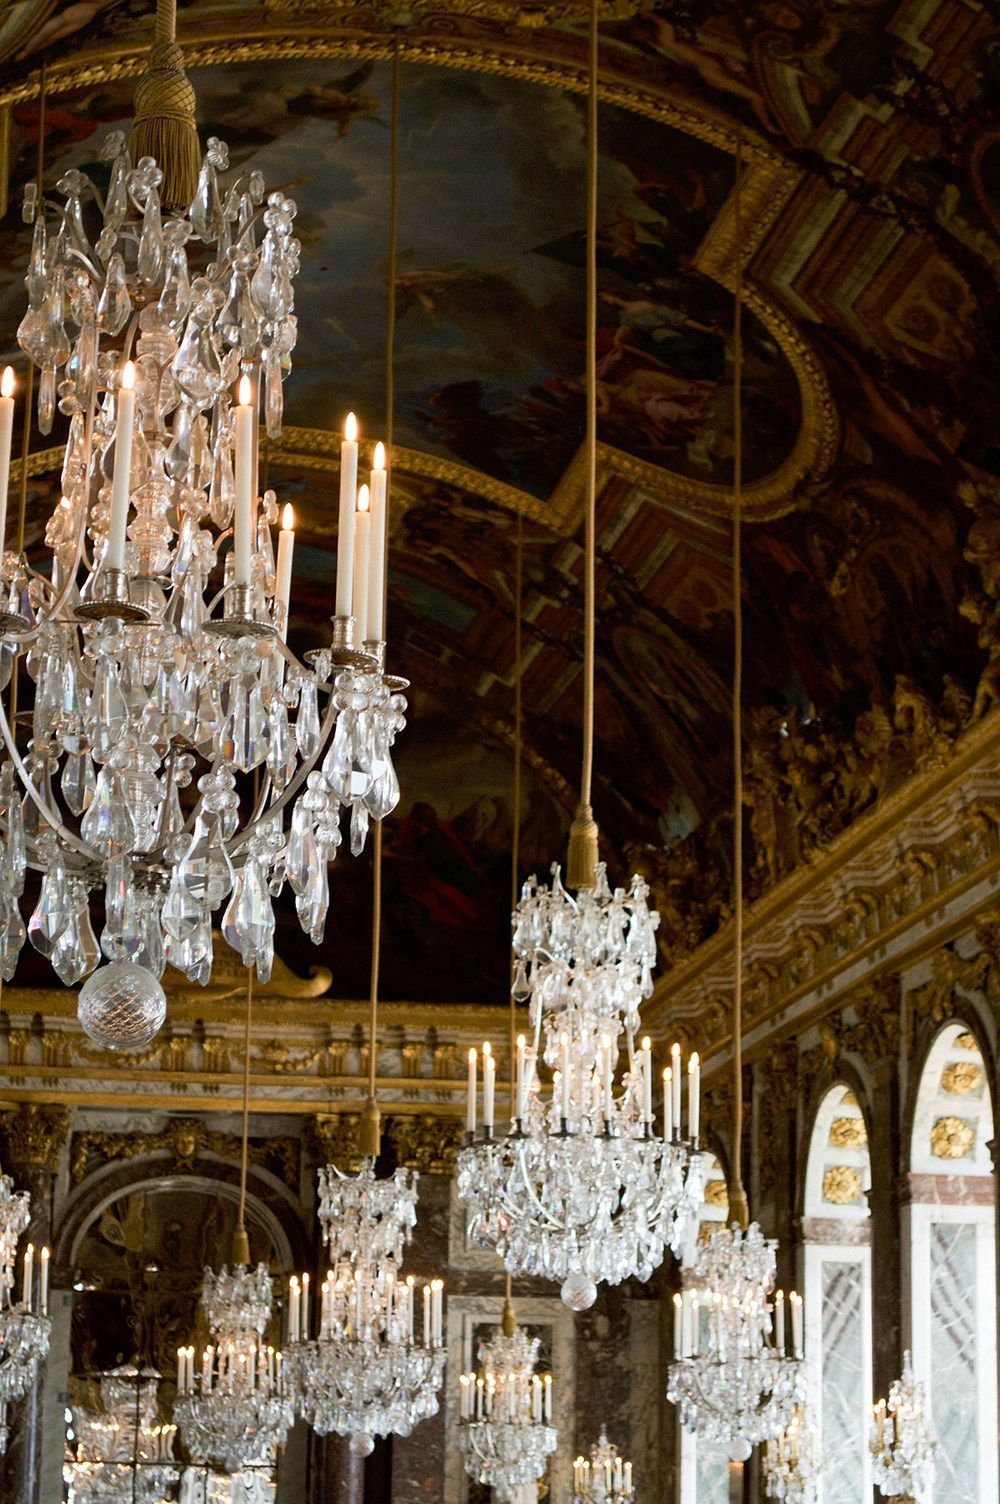 Stunning chandeliers in the hall of mirrors versailles chateau stunning chandeliers in the hall of mirrors versailles chateau paris see more mozeypictures Images